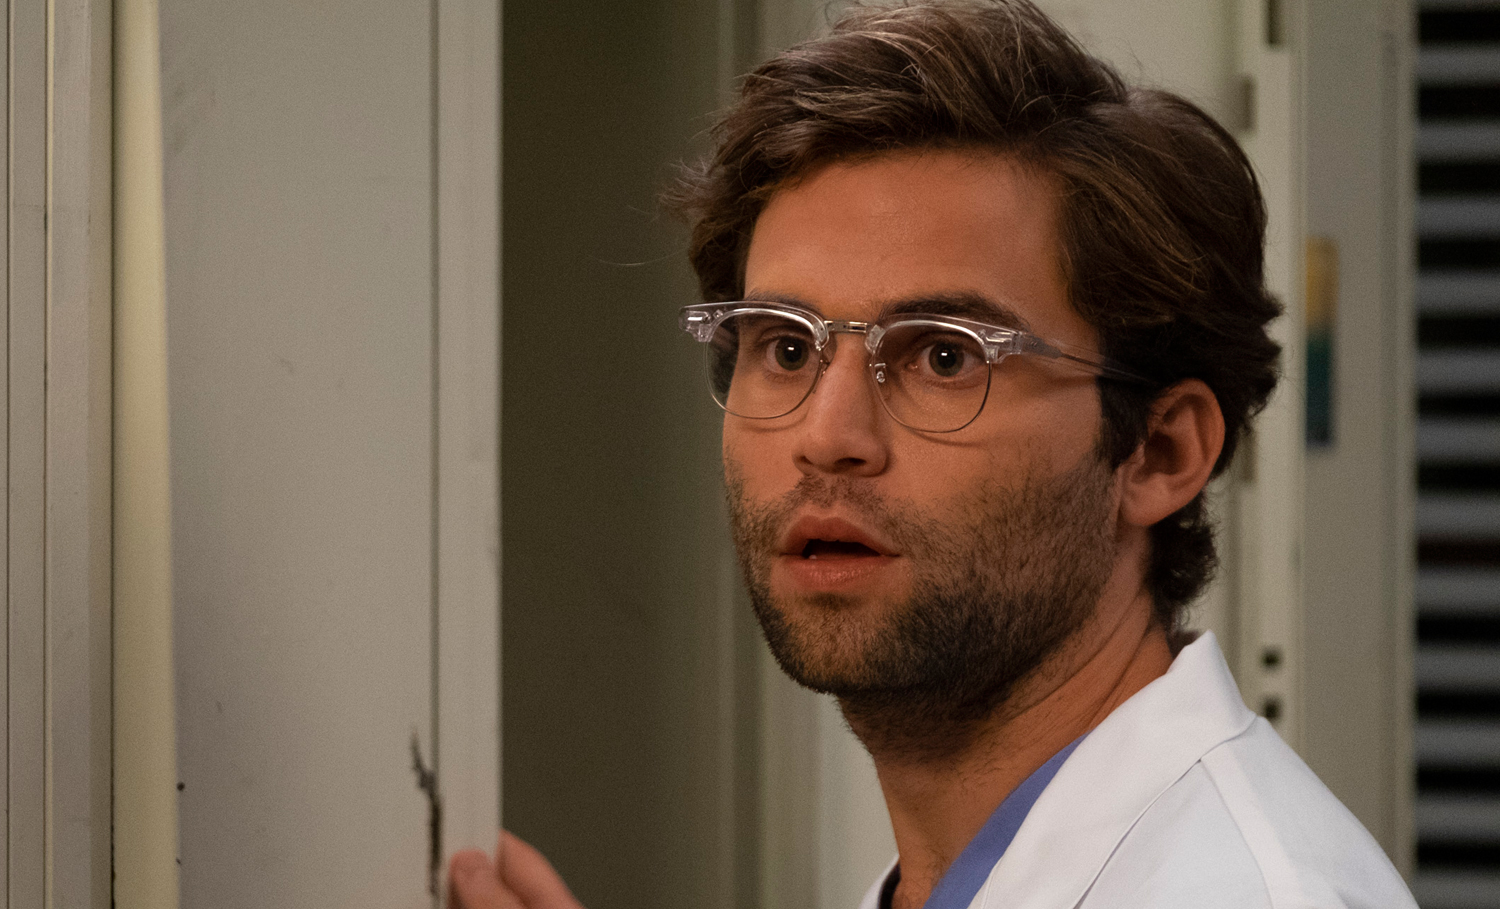 Grey S Anatomy Actor Jake Borelli Comes Out As Gay Greys